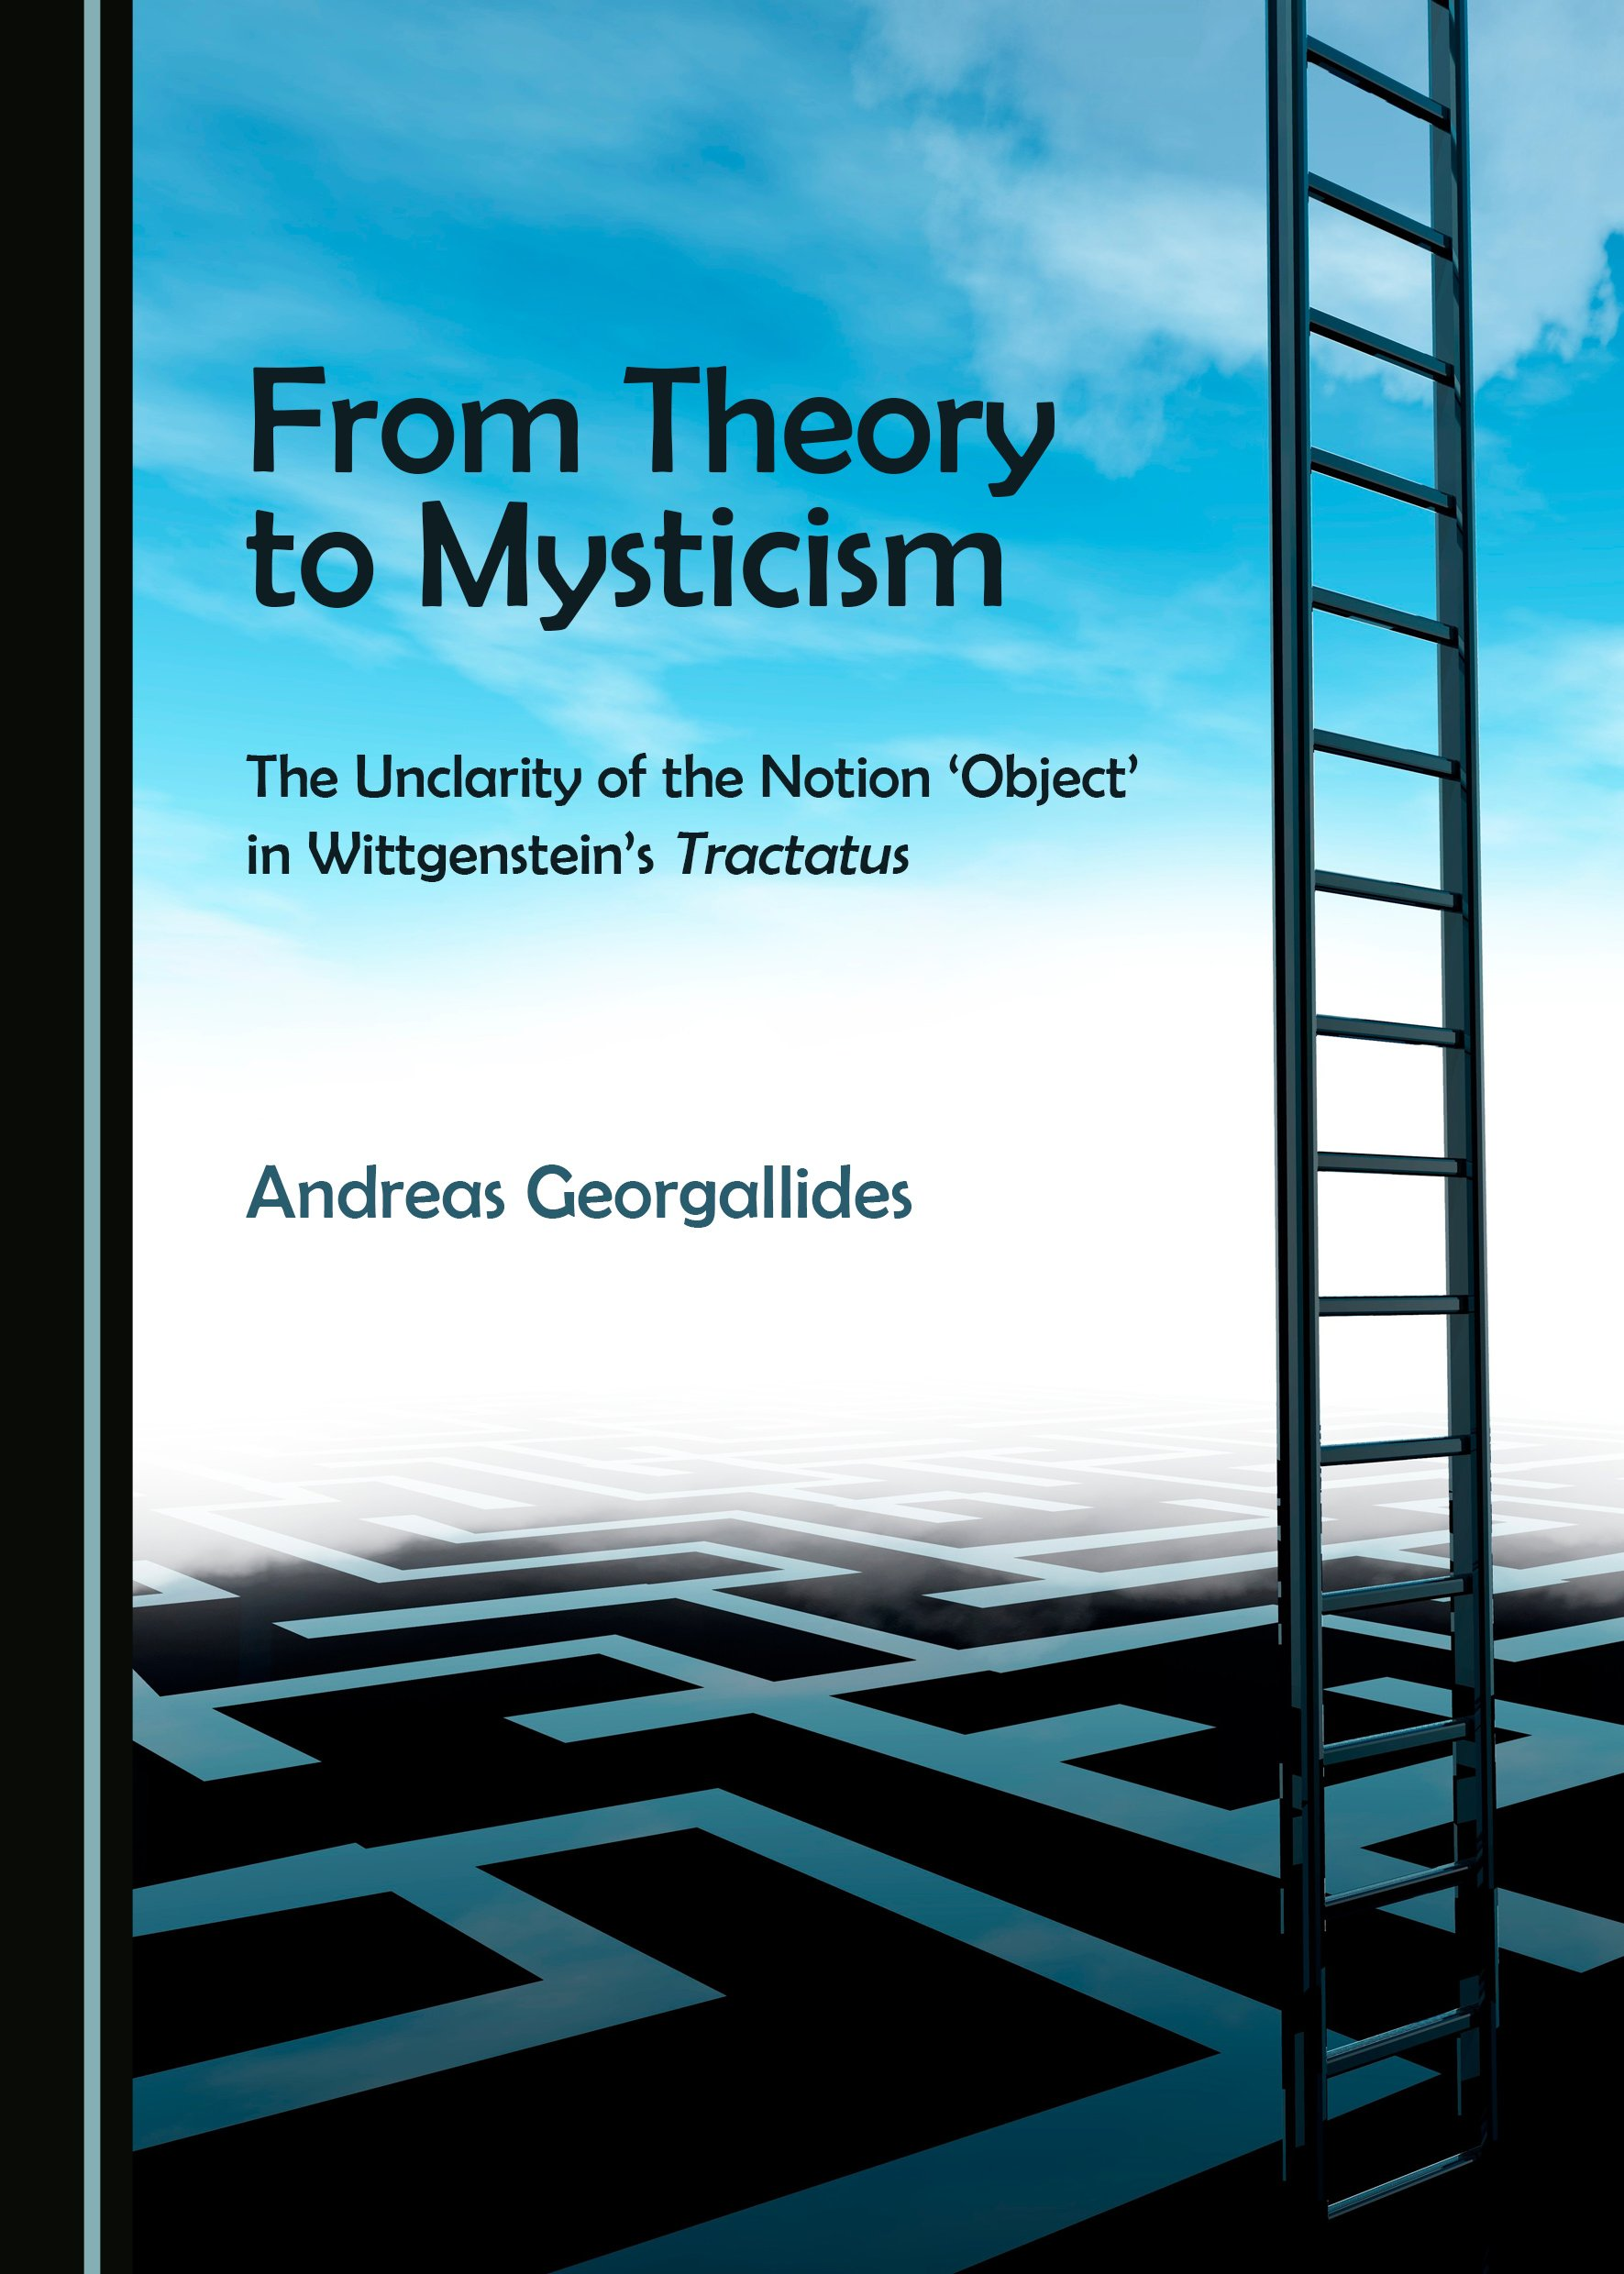 From Theory to Mysticism: The Unclarity of the Notion 'Object' in Wittgenstein's Tractatus